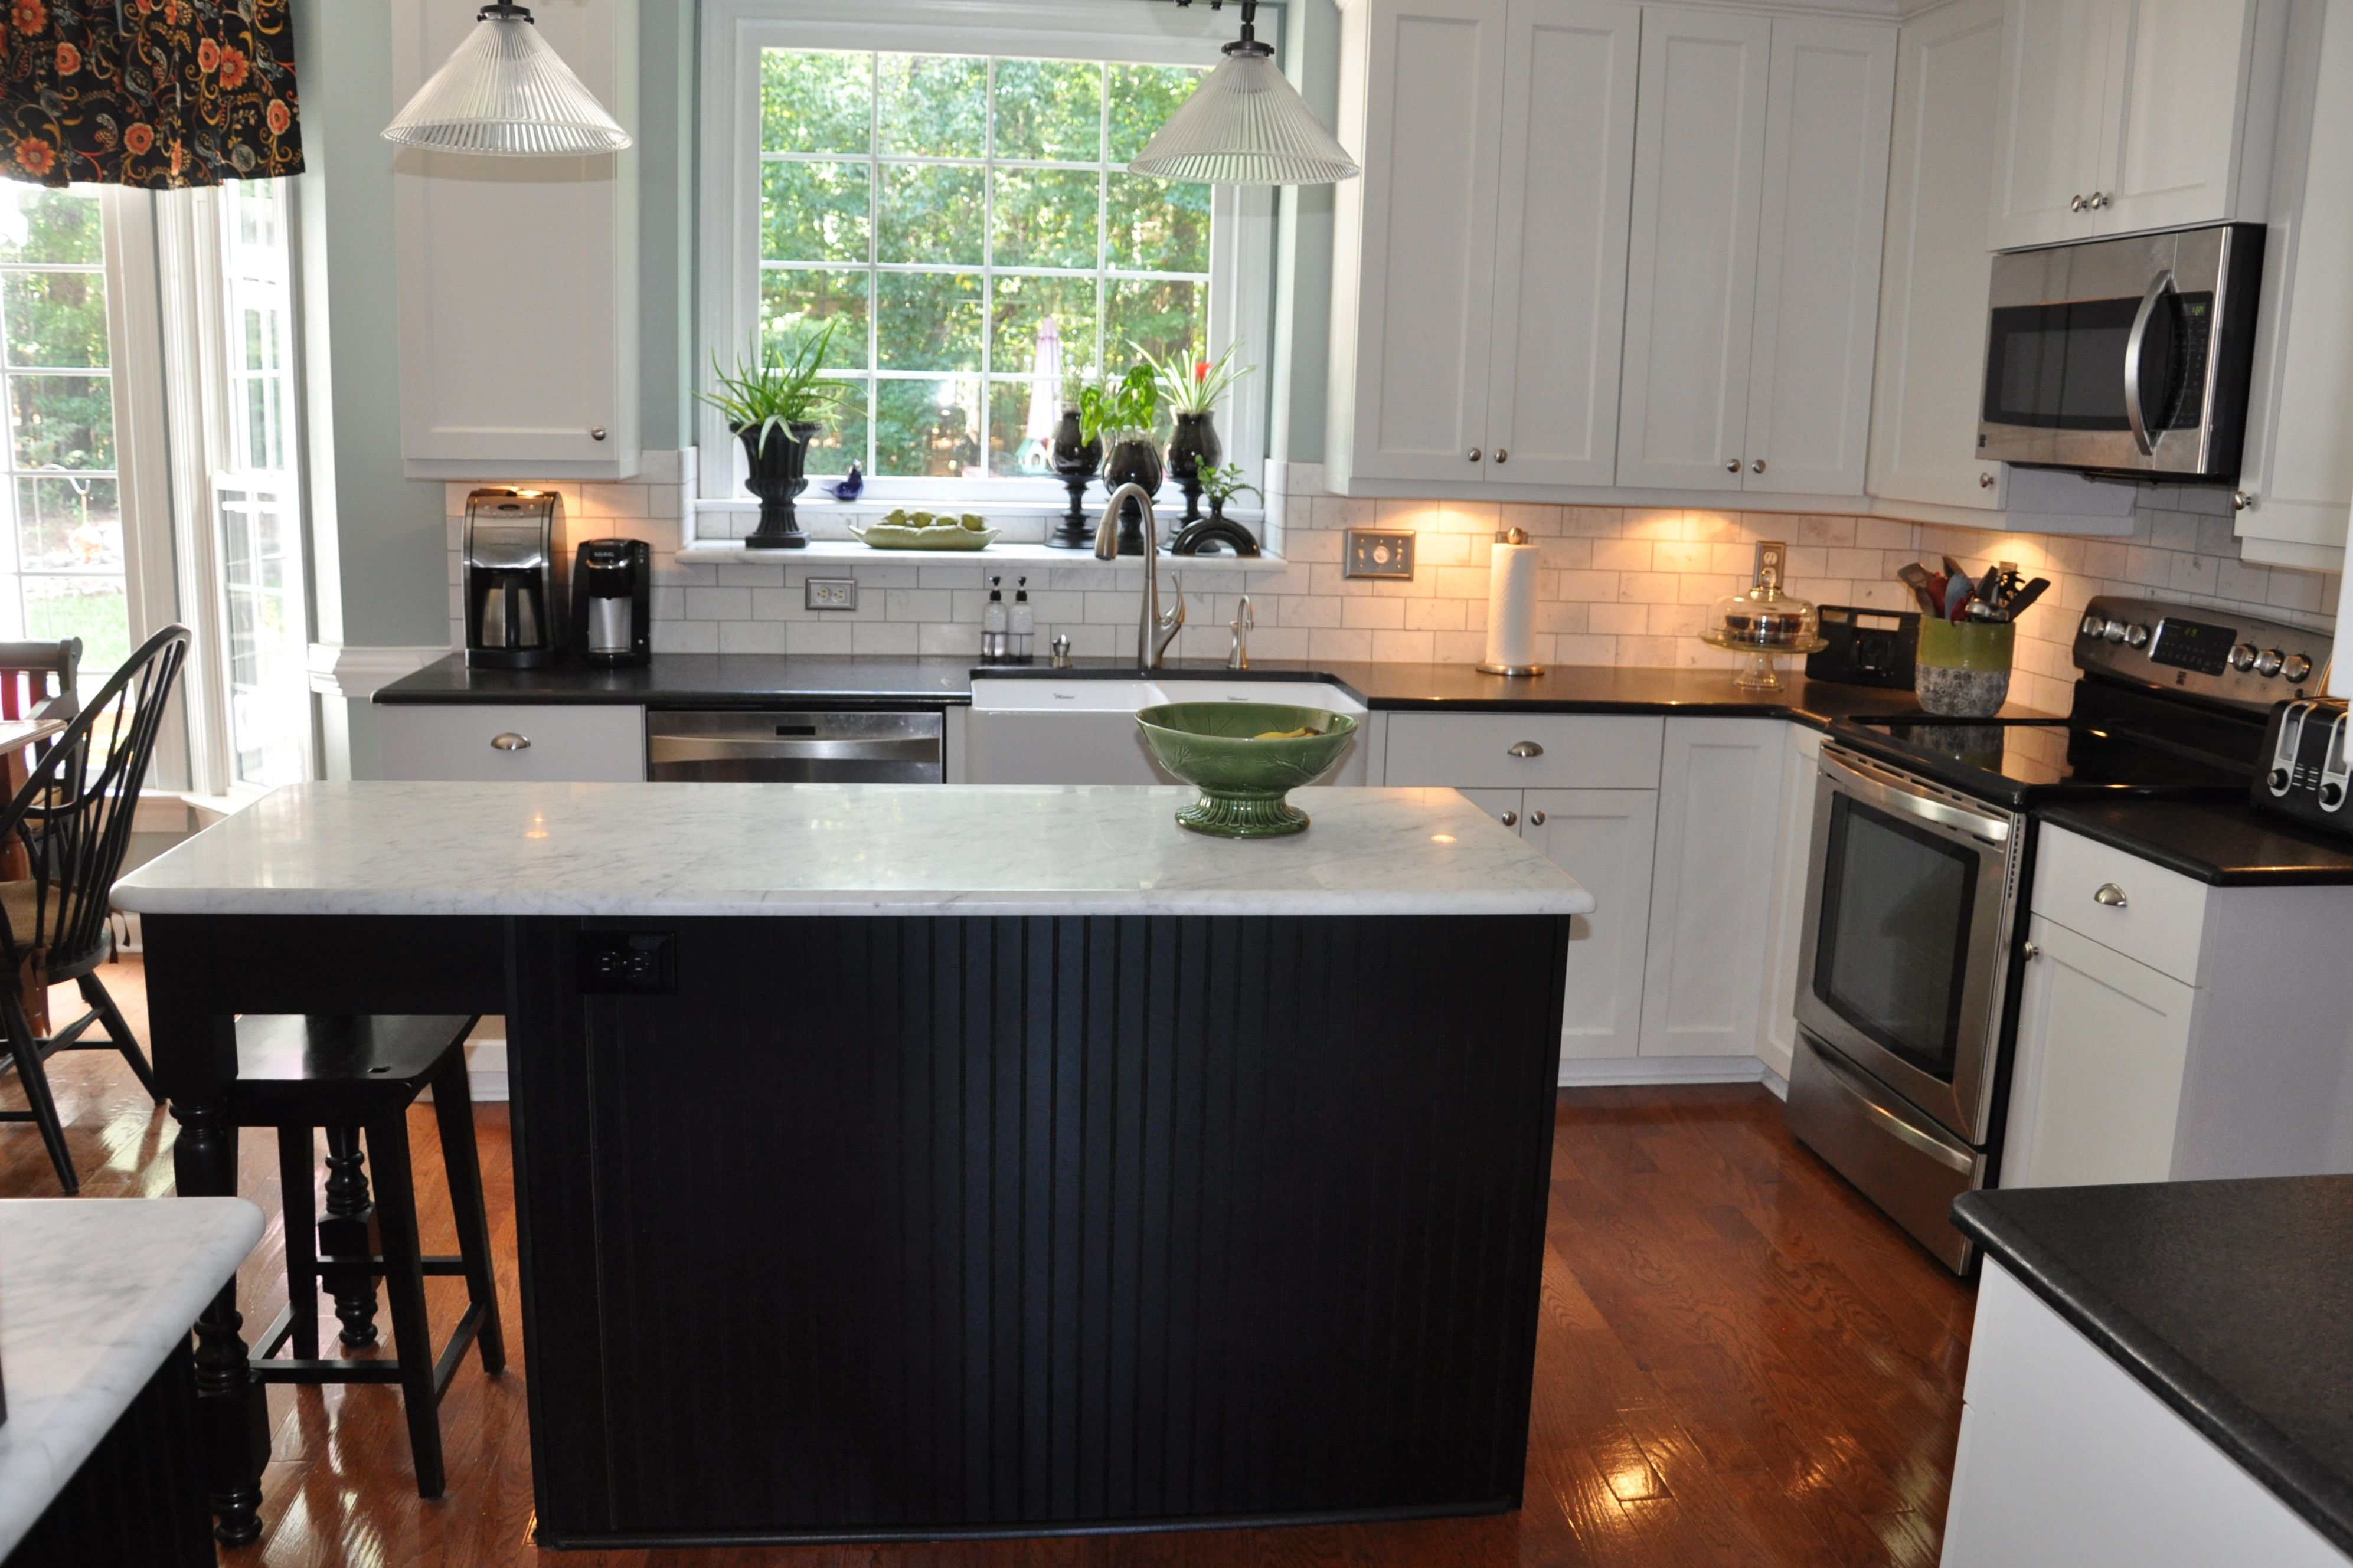 Countertops In Carrara Marble Honed Finish And Black Pearl Granite Leather  Finish. Full Kitchen Remodel